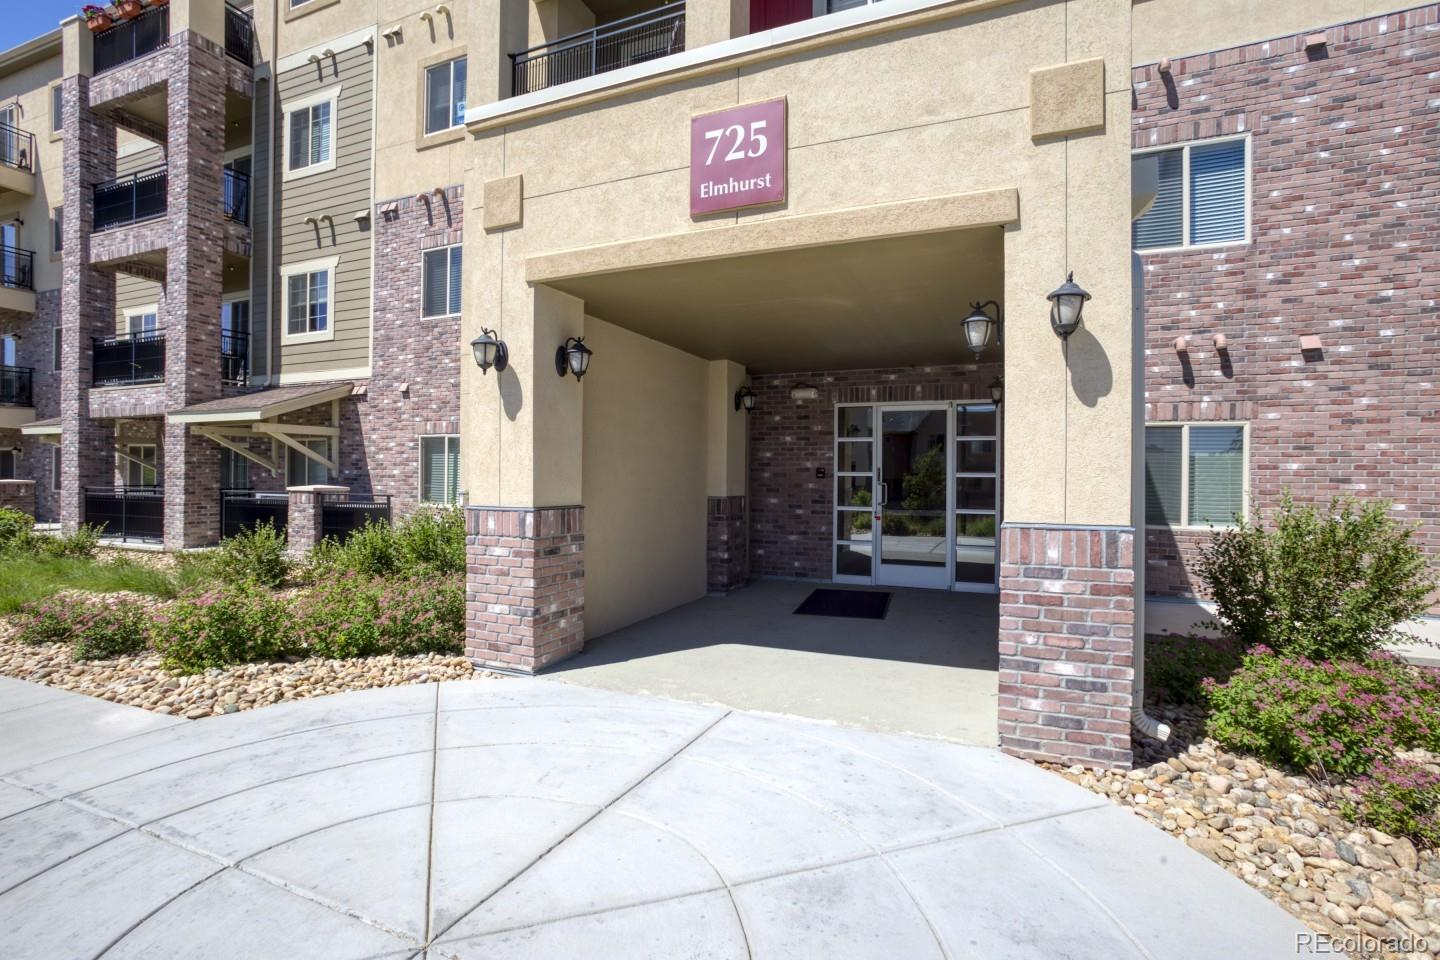 This fantastic condo has everything: LOCATION, spacious, bright, new paint, under cabinet lighting, 9' ceilings and a fantastic open floor plan! Counter-tops to be replaced with quartz - make your color selection by 9/7/2/0. (choices in property) Come check out this gently lived in home in central Highlands Ranch Town Center. Beautiful east views out both bedrooms, easy access to underground, heated parking with one space and quick elevator. Great in unit laundry room with washer and dryer included! Walking distance to many restaurants and shopping and fantastic parks (Civic Green Park is a short walk). Farmers market typically available through the summer and fall. All Highlands Ranch rec centers are included with the HOA which includes parks, full work out, pools, trails.... so much to list.  Call listing agents if you need more details.